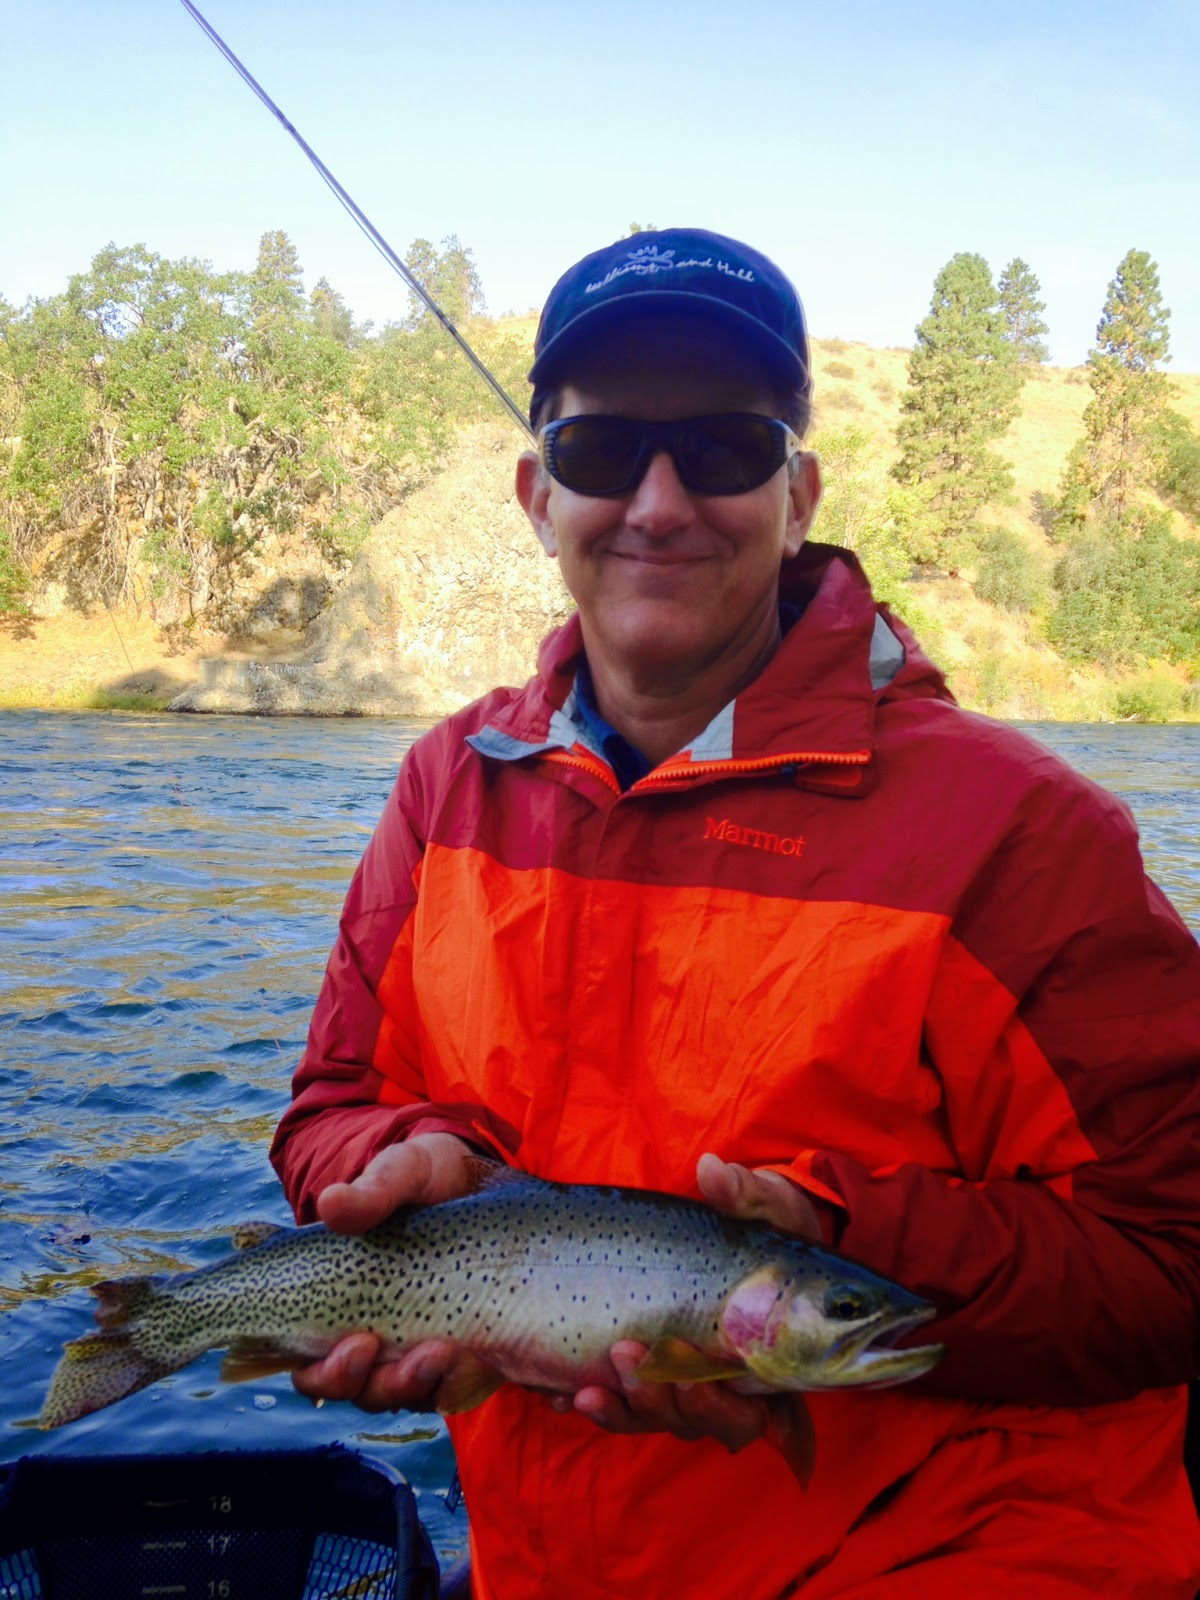 Yakima river fishing report 8 11 14 the evening hatch for Fishing forecast oklahoma